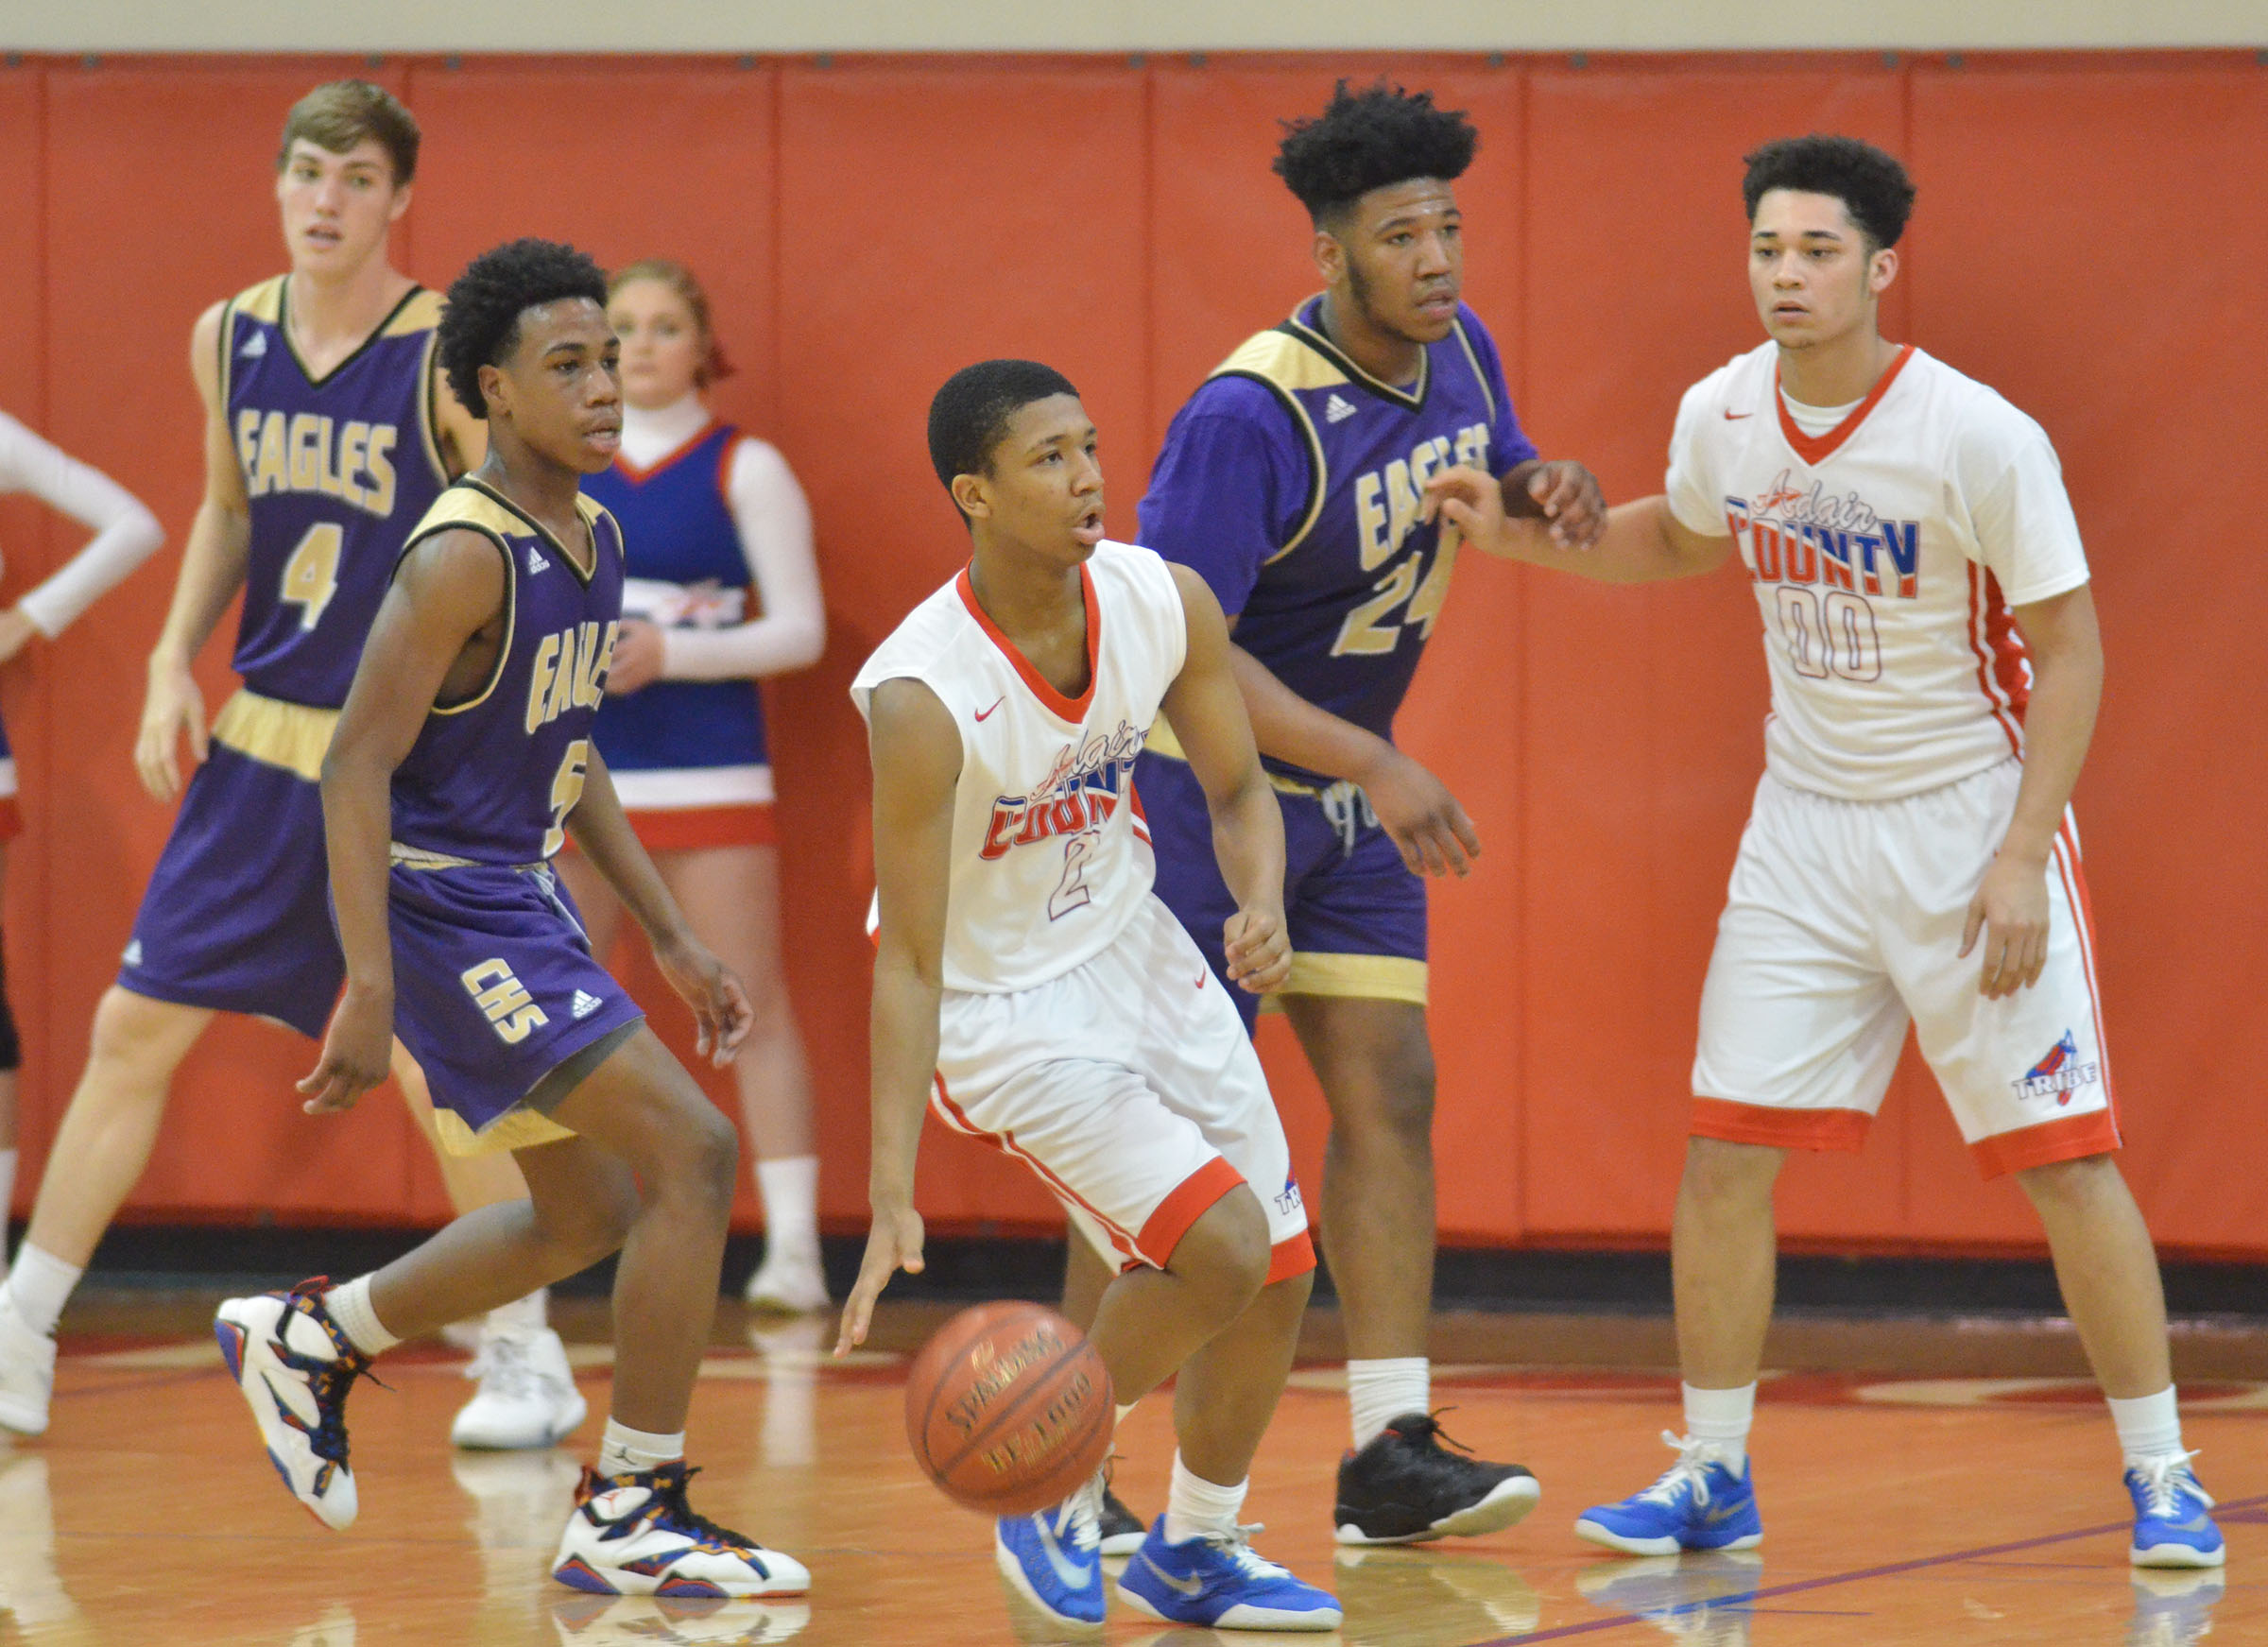 Brothers Malachi Corley, at left, a freshman, and CHS senior Micah Corley play defense.